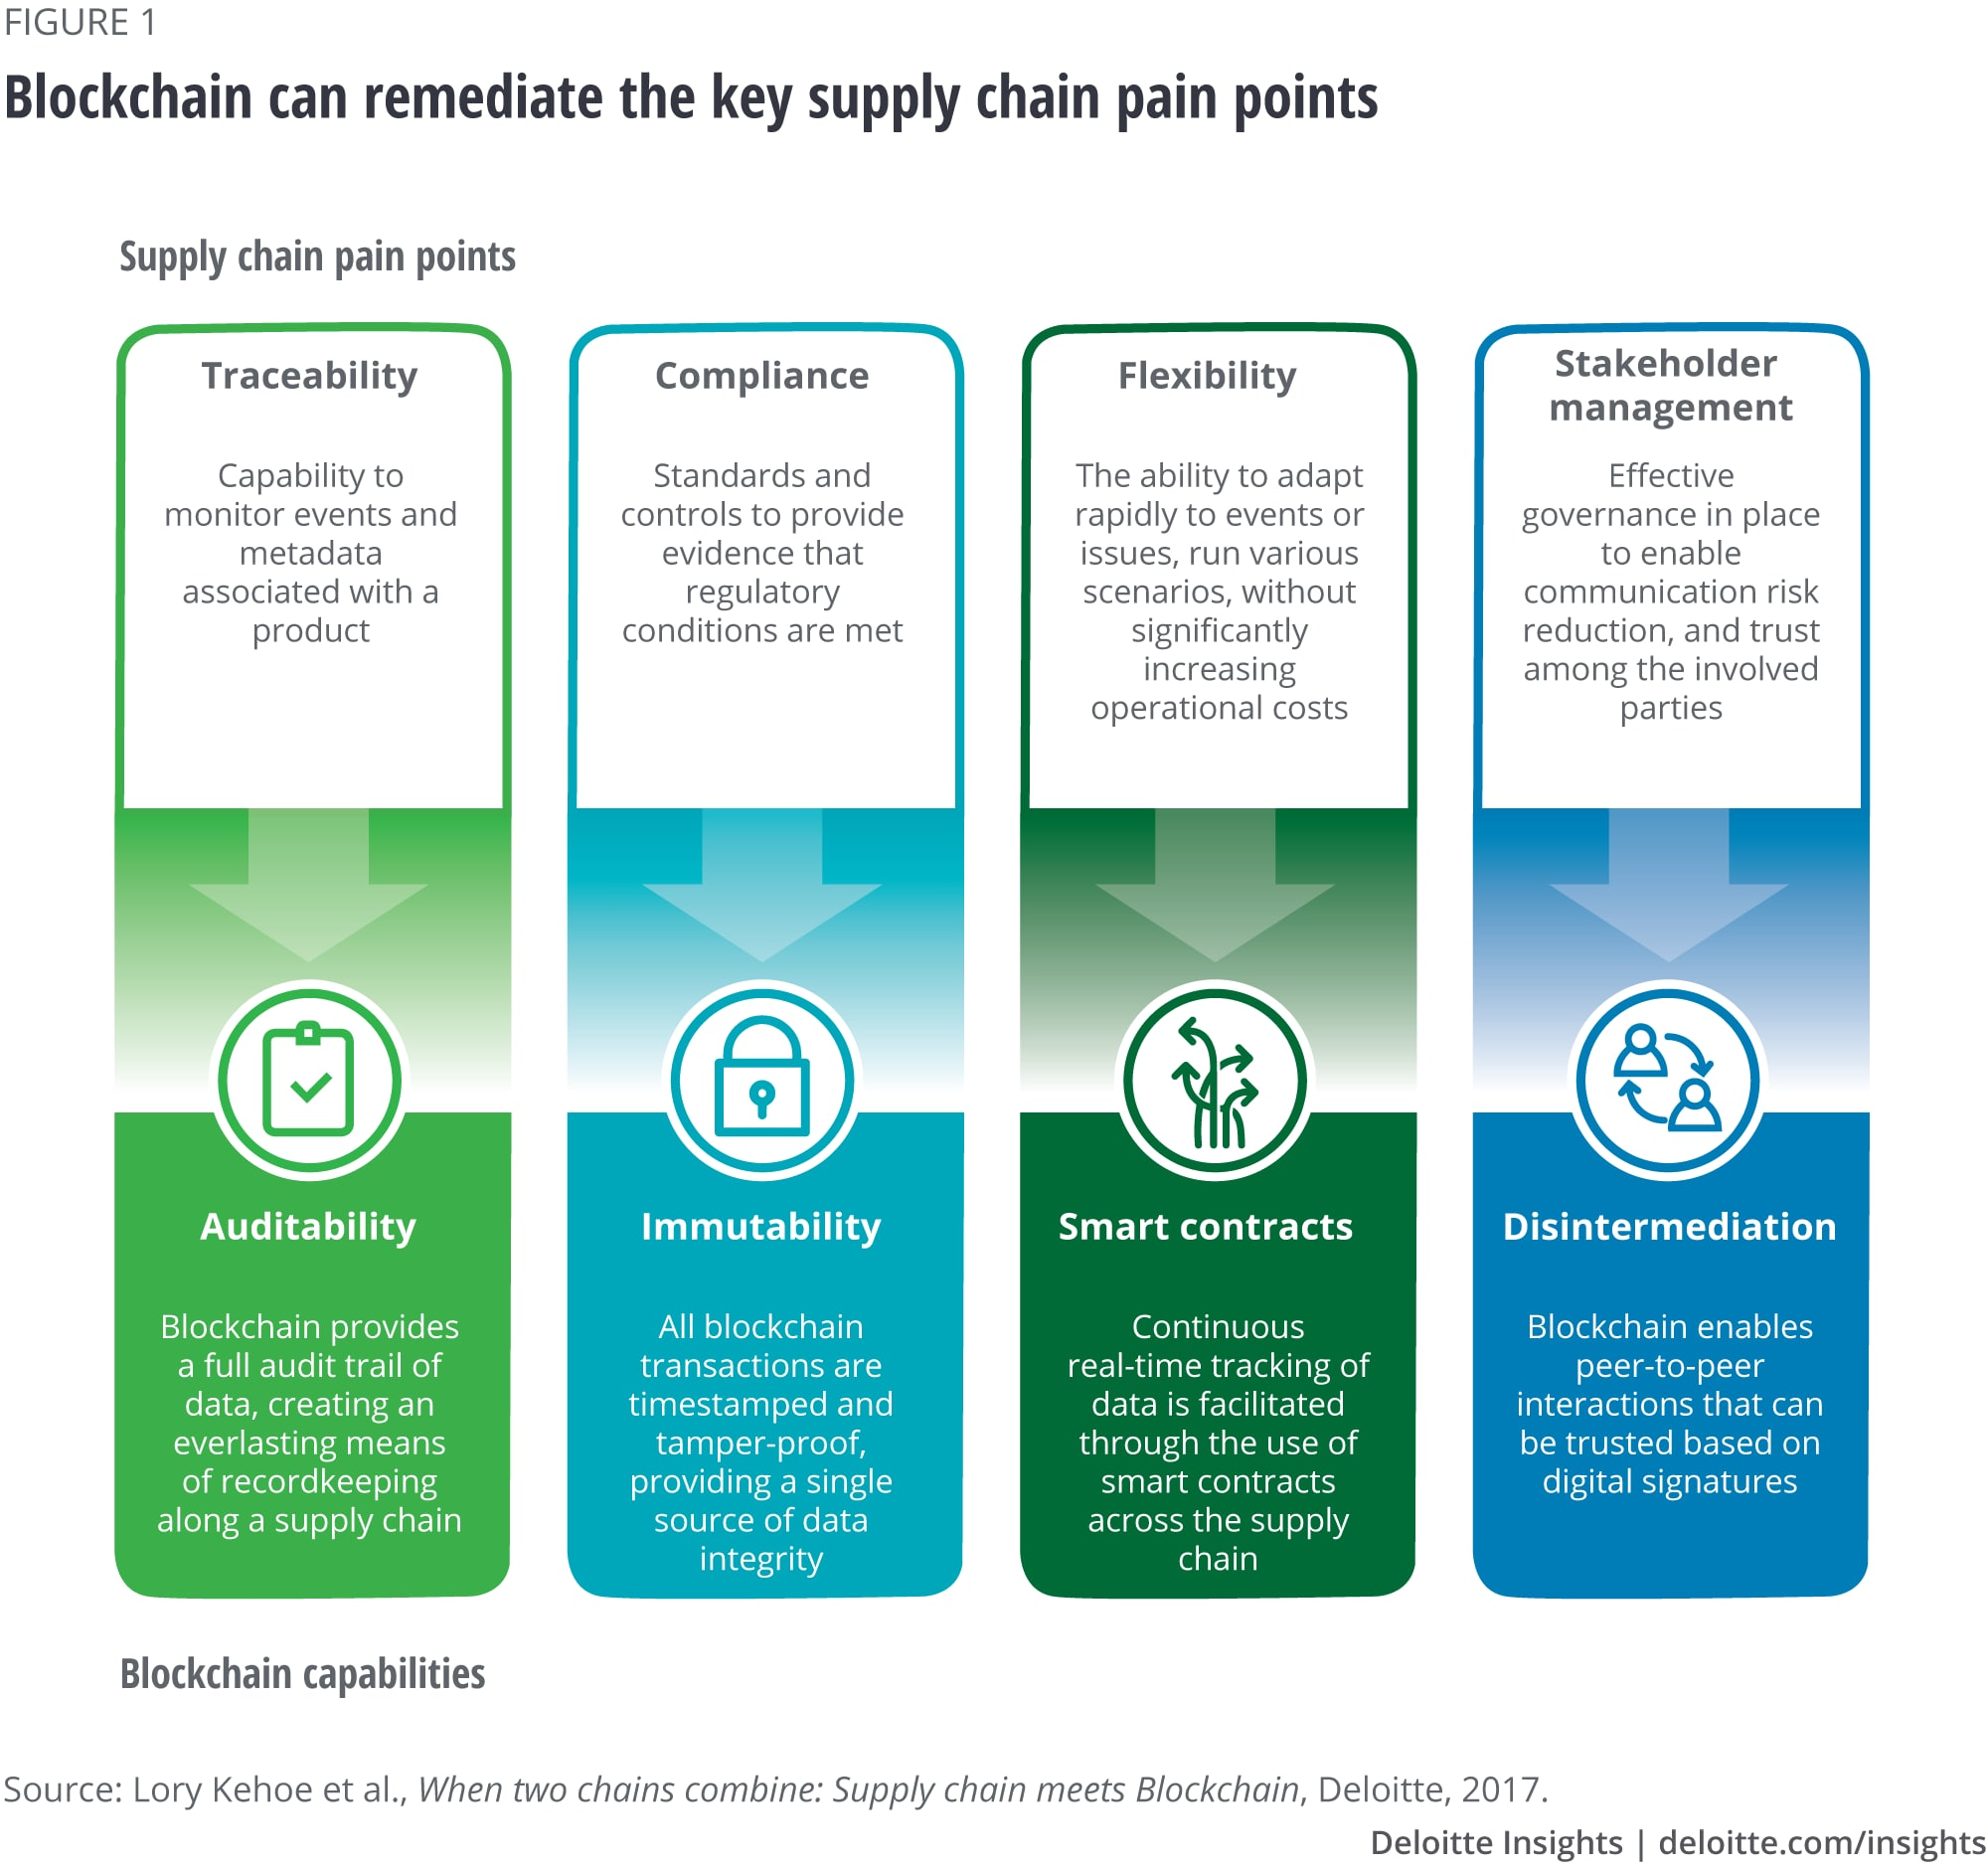 Blockchain can remediate the key supply chain pain points